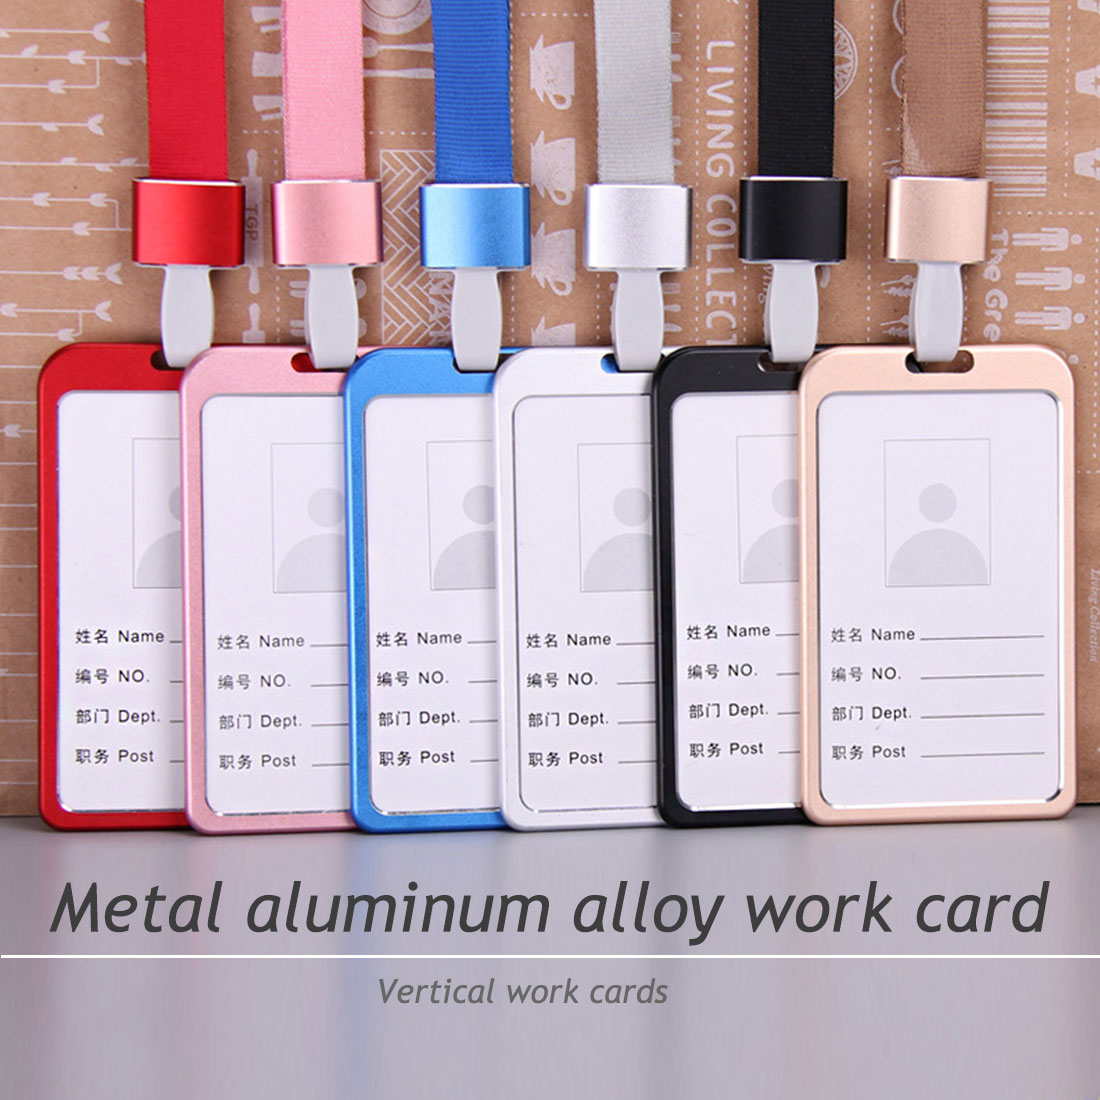 New Fashion Metal Buckle Business Card ID Holder Badge Lanyard Work Card With Adjustable Lanyard For Various Occasions